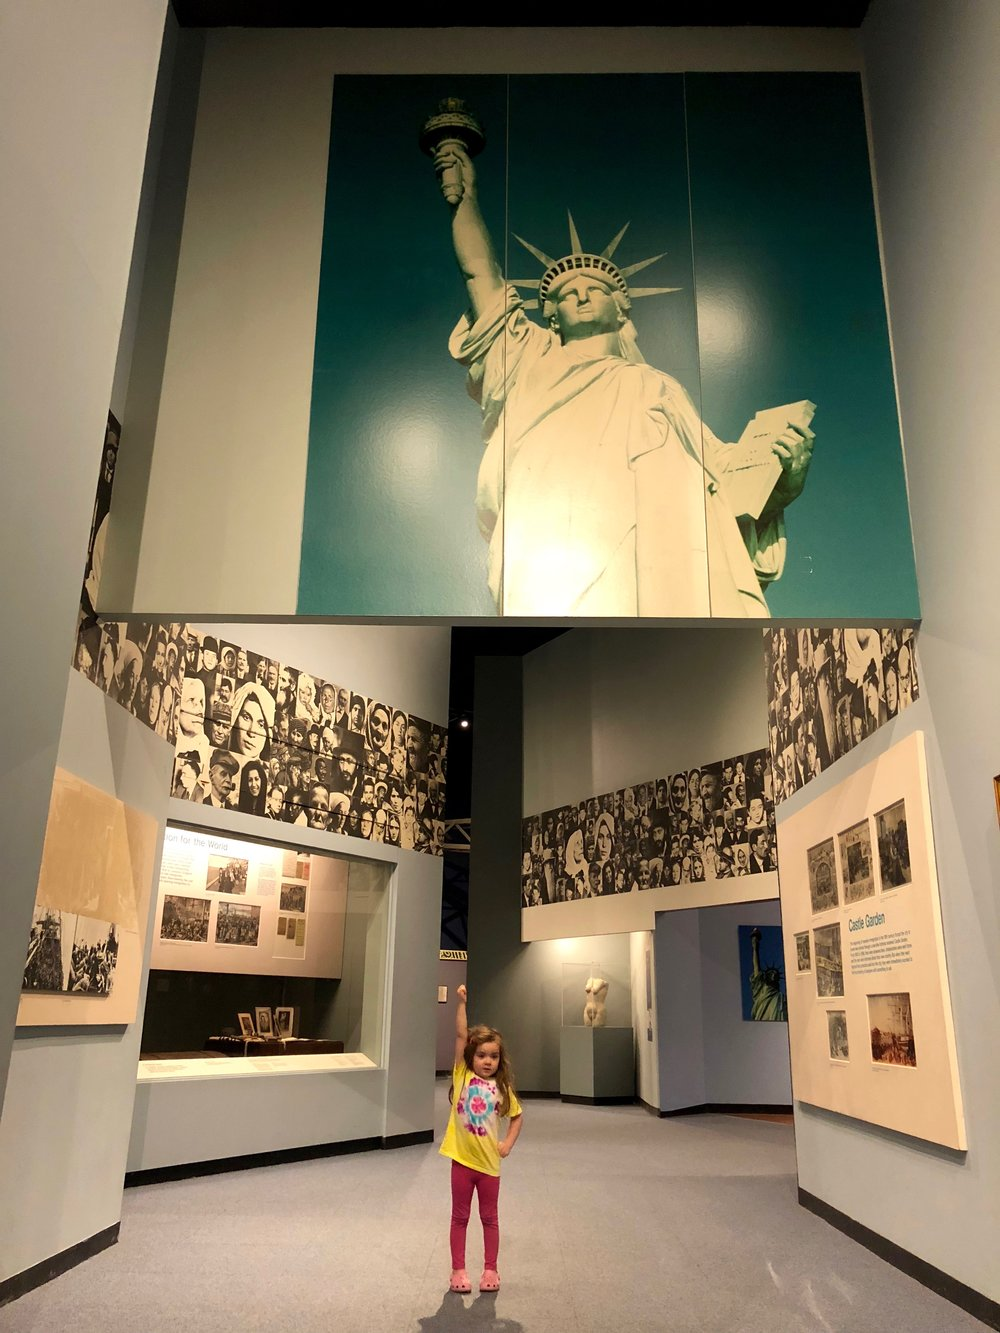 Ellis Island exhibit at the New York State Museum